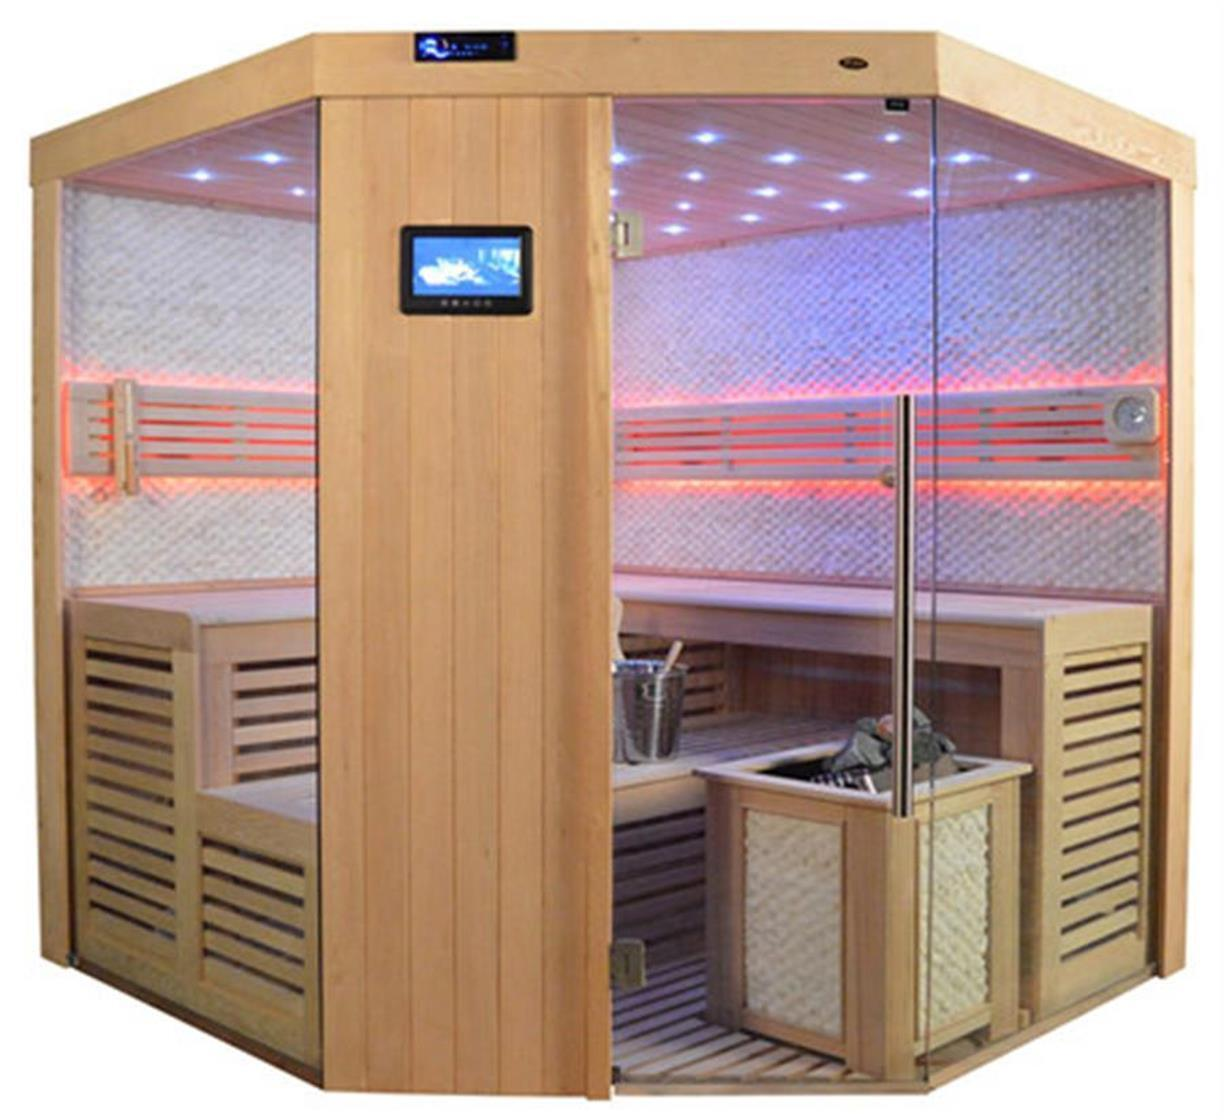 sauna sauna komplett massivholz vs 4024 bio 220 220 videosauna superpreis saunen sauna. Black Bedroom Furniture Sets. Home Design Ideas